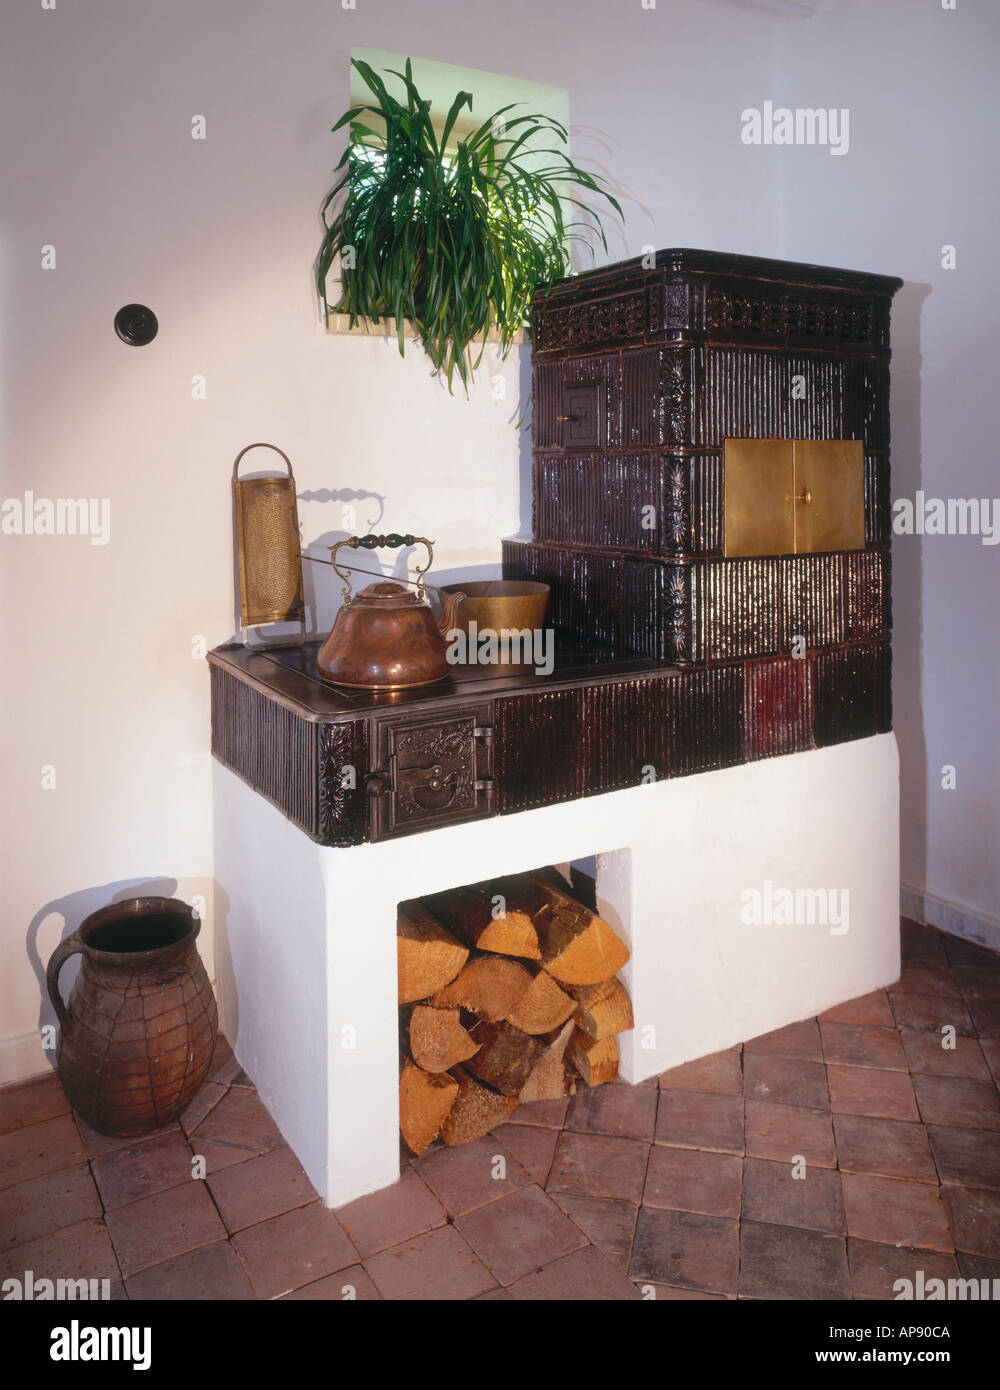 Traditional tiled stove inside house - Stock Image